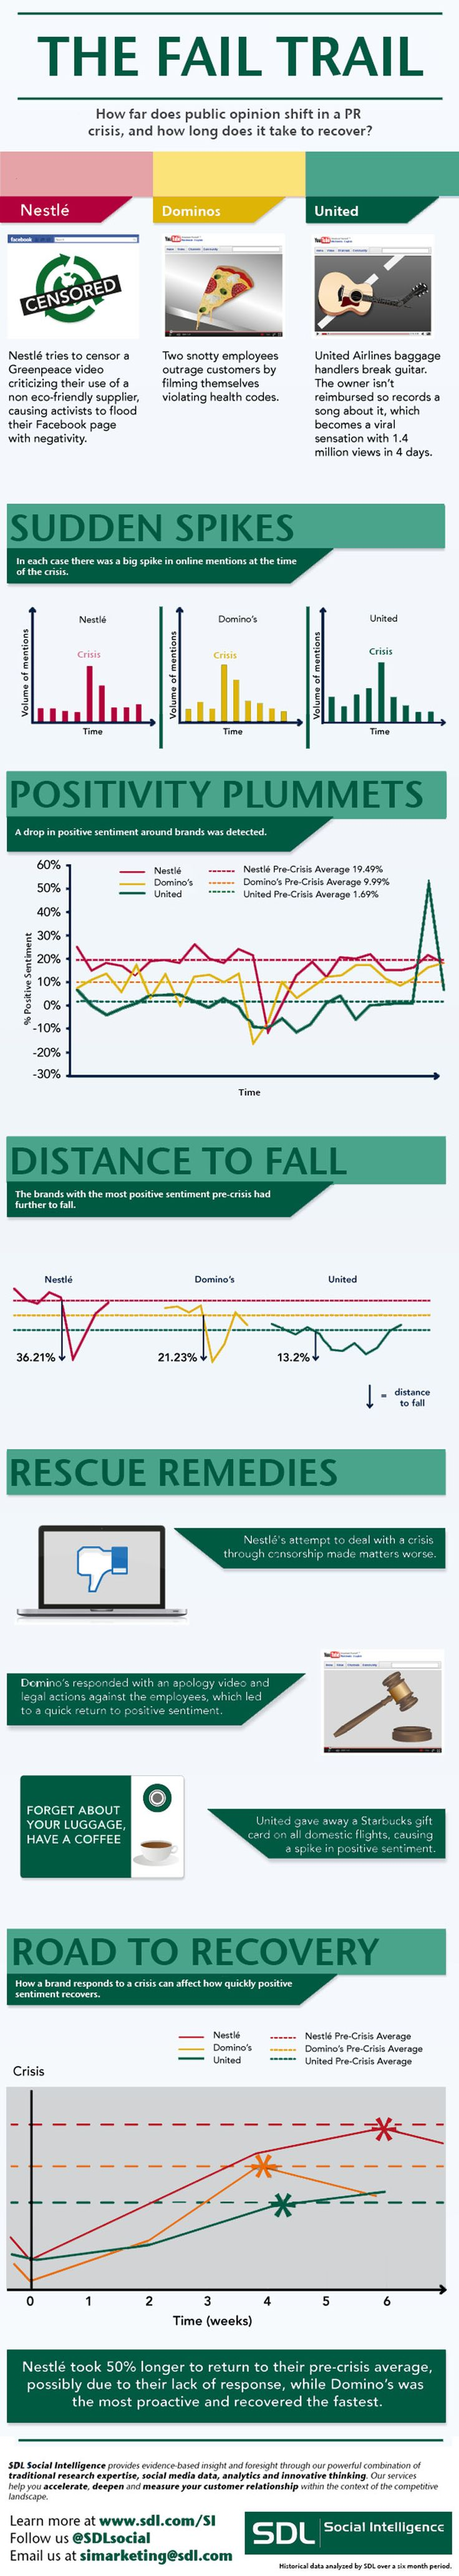 The fail trail – the do's and don'ts when a social media PR crises hits #infographic